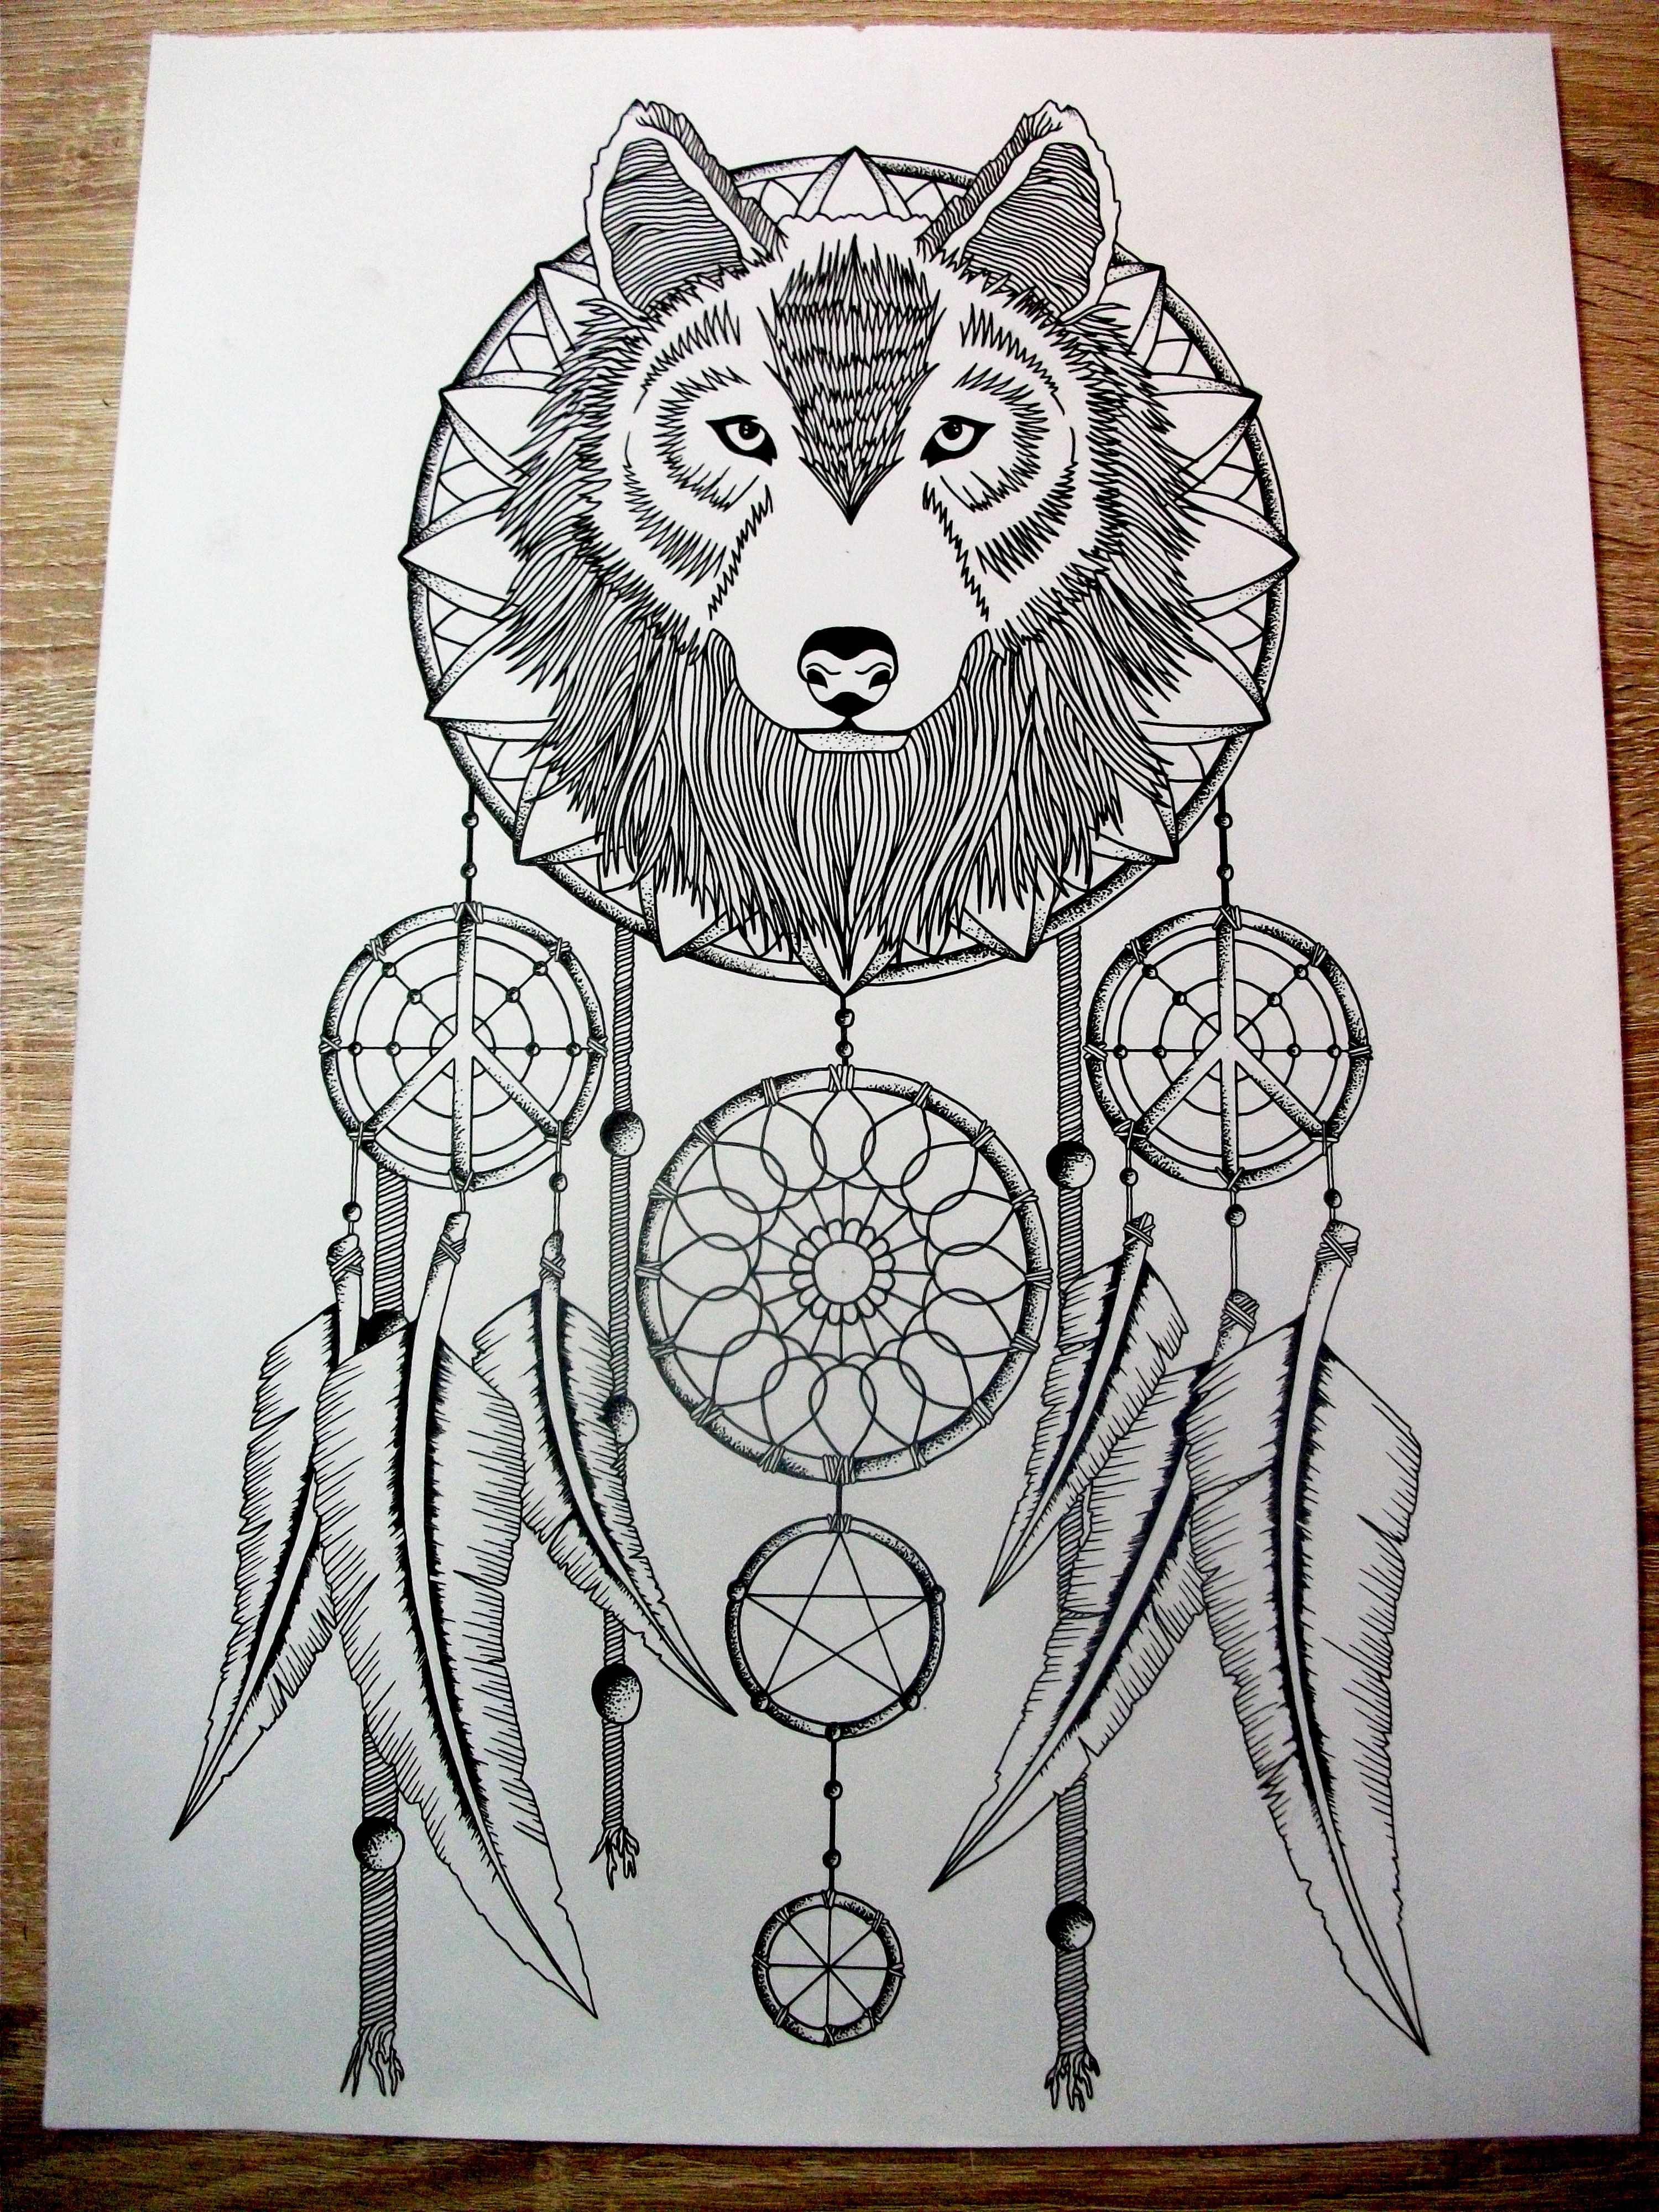 Dreamcatcher drawing | Etsy